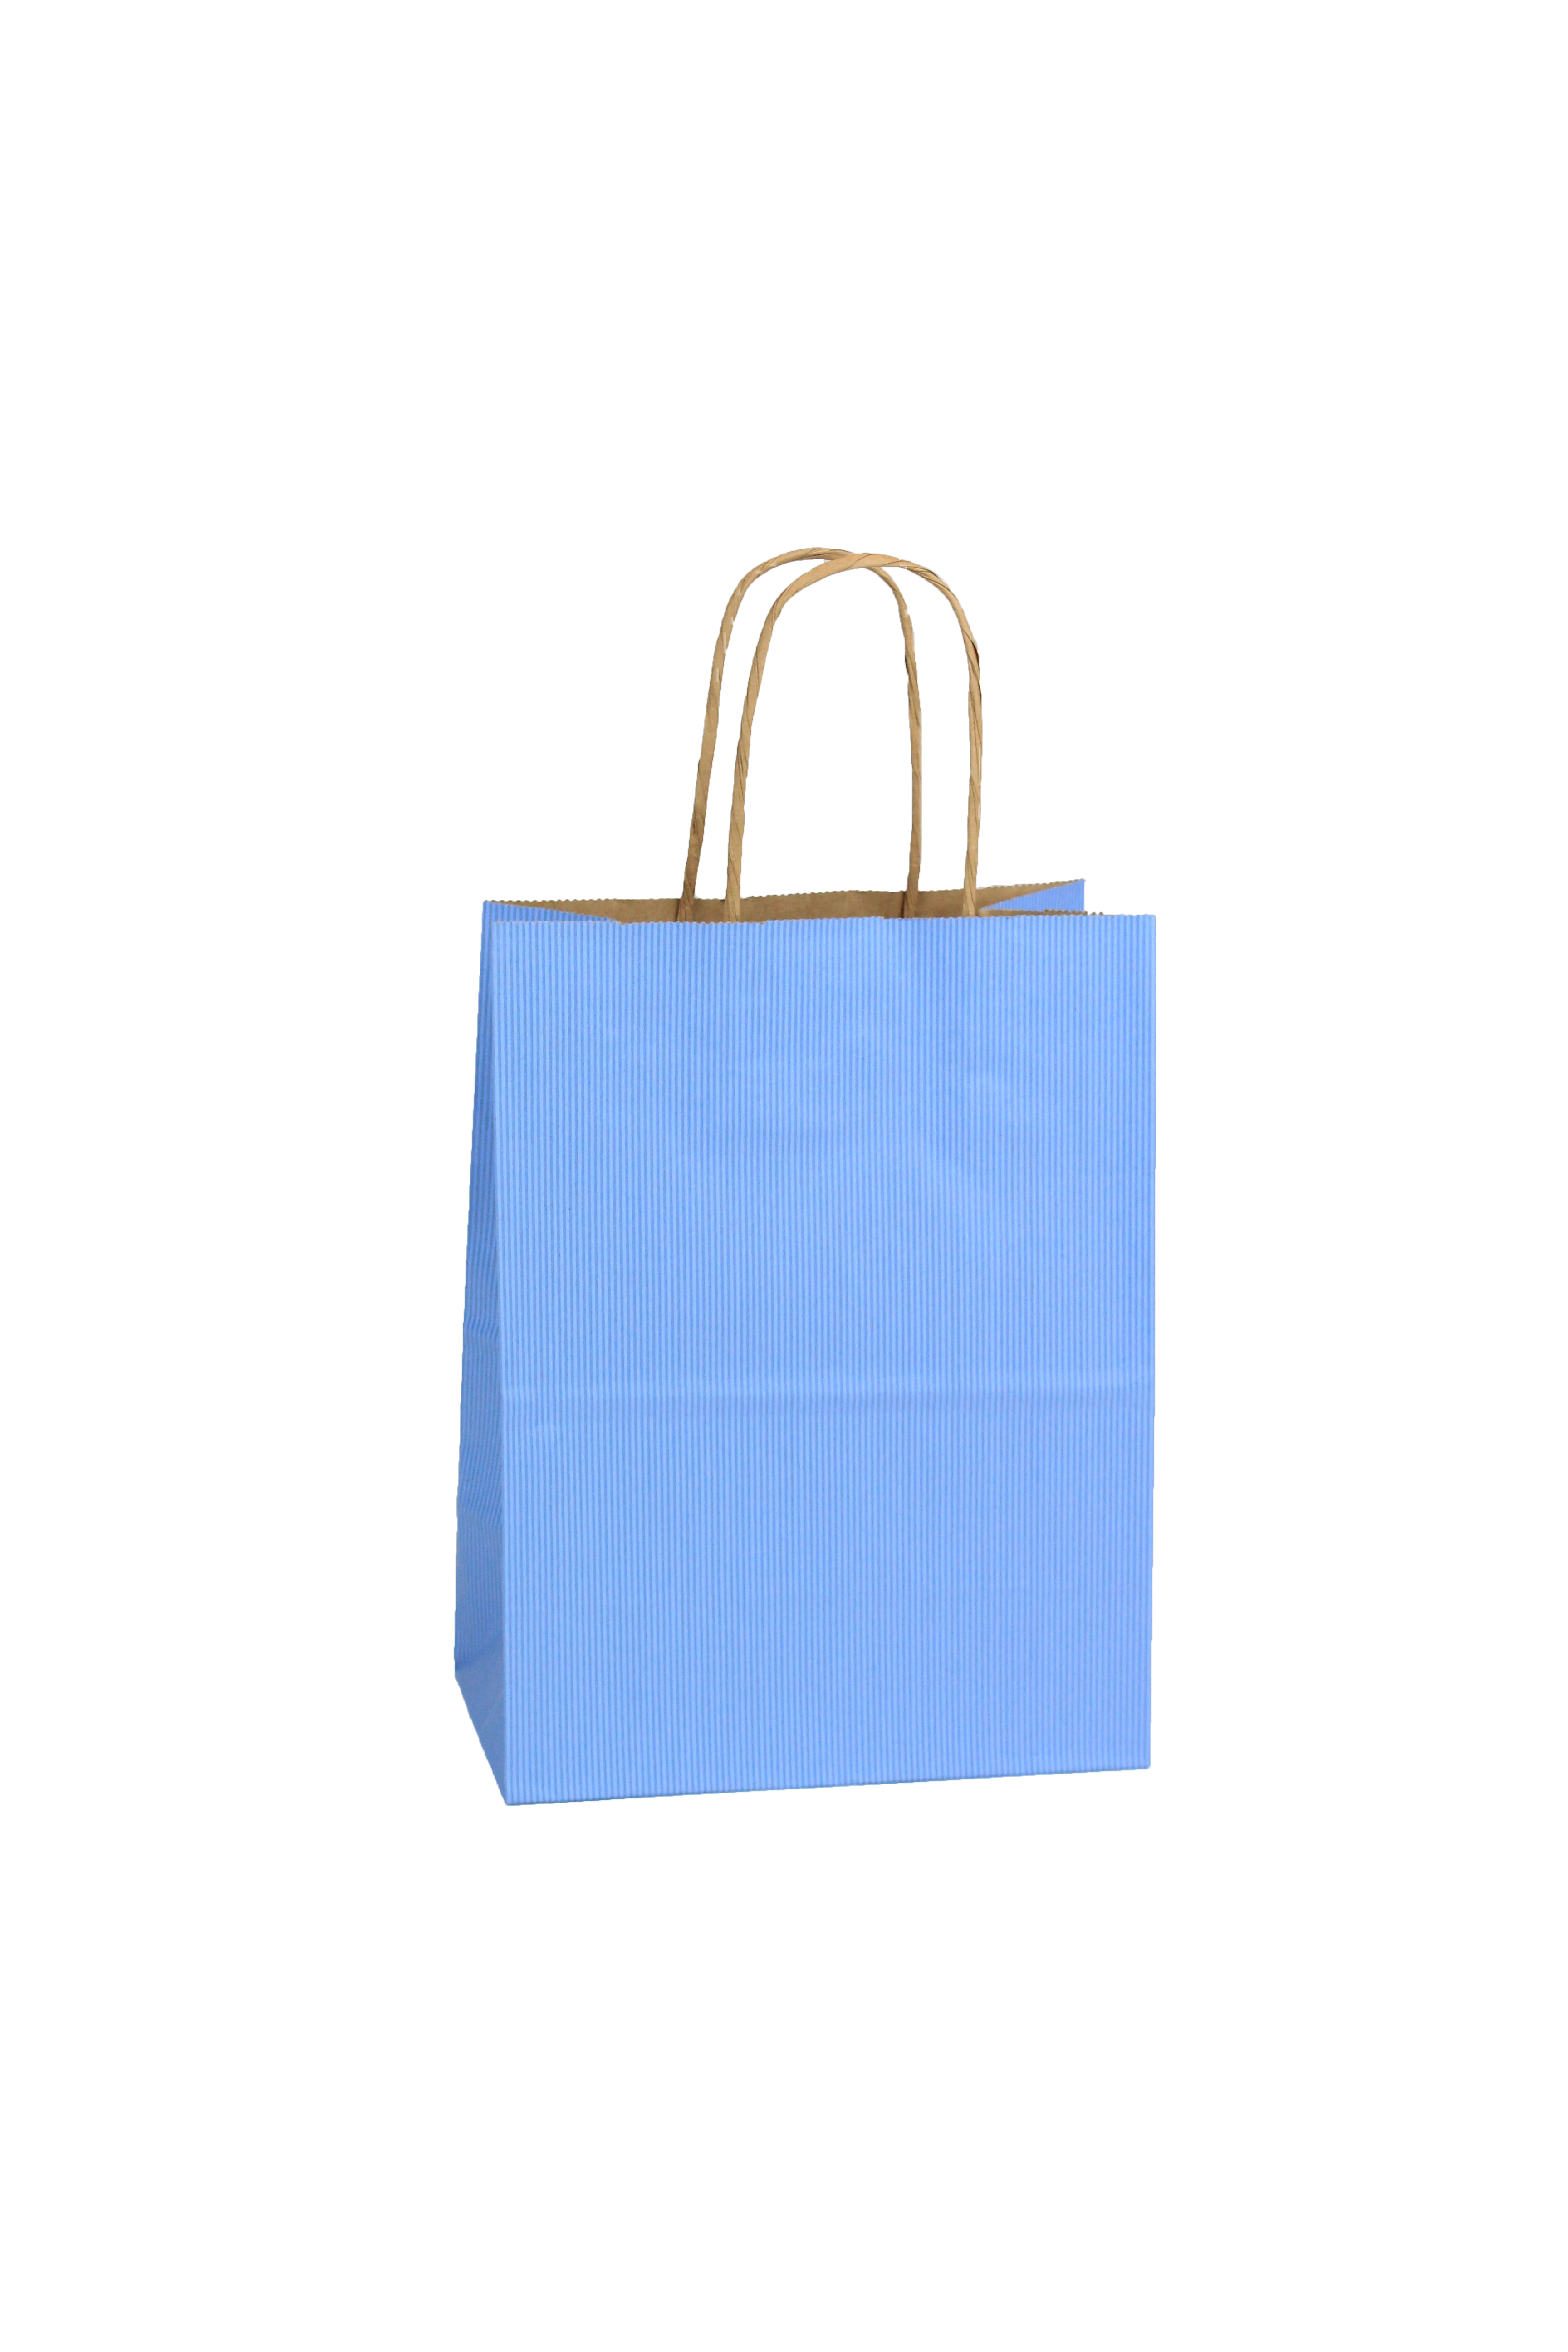 Shopping Bag SS French Blue 5.5x3.25x8.375